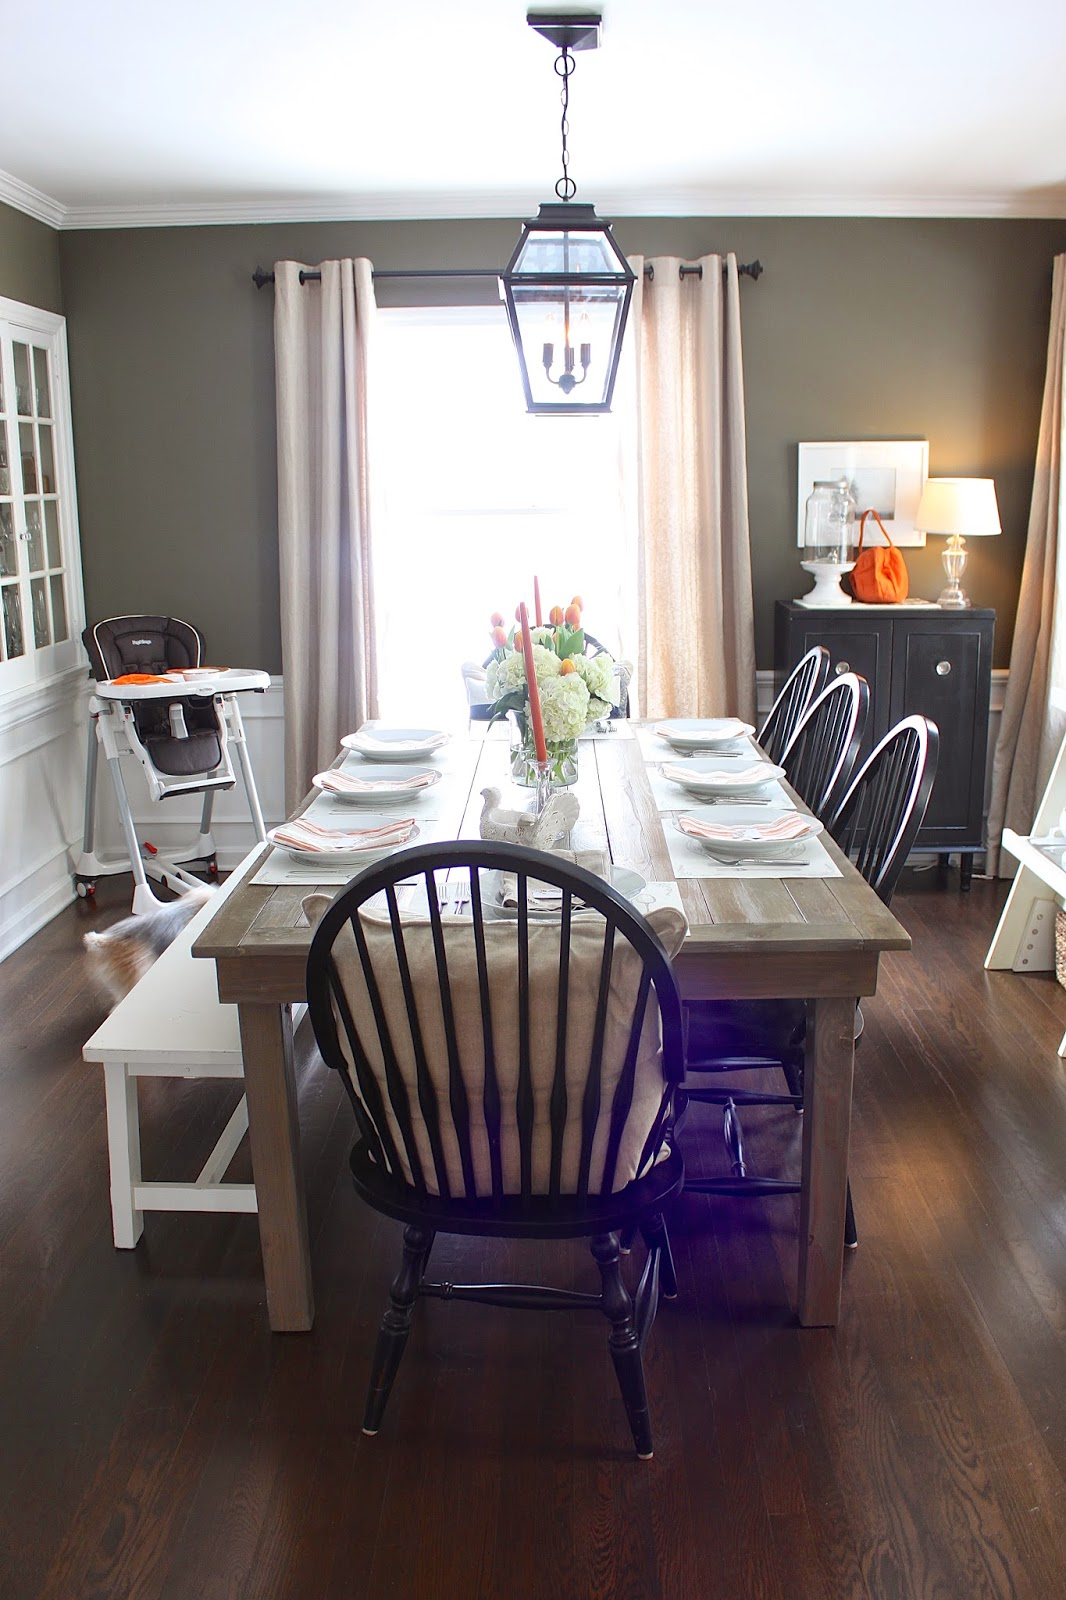 Our DIY Restoration Hardware KnockOff Table A Review Years Later - Knock off restoration hardware dining table